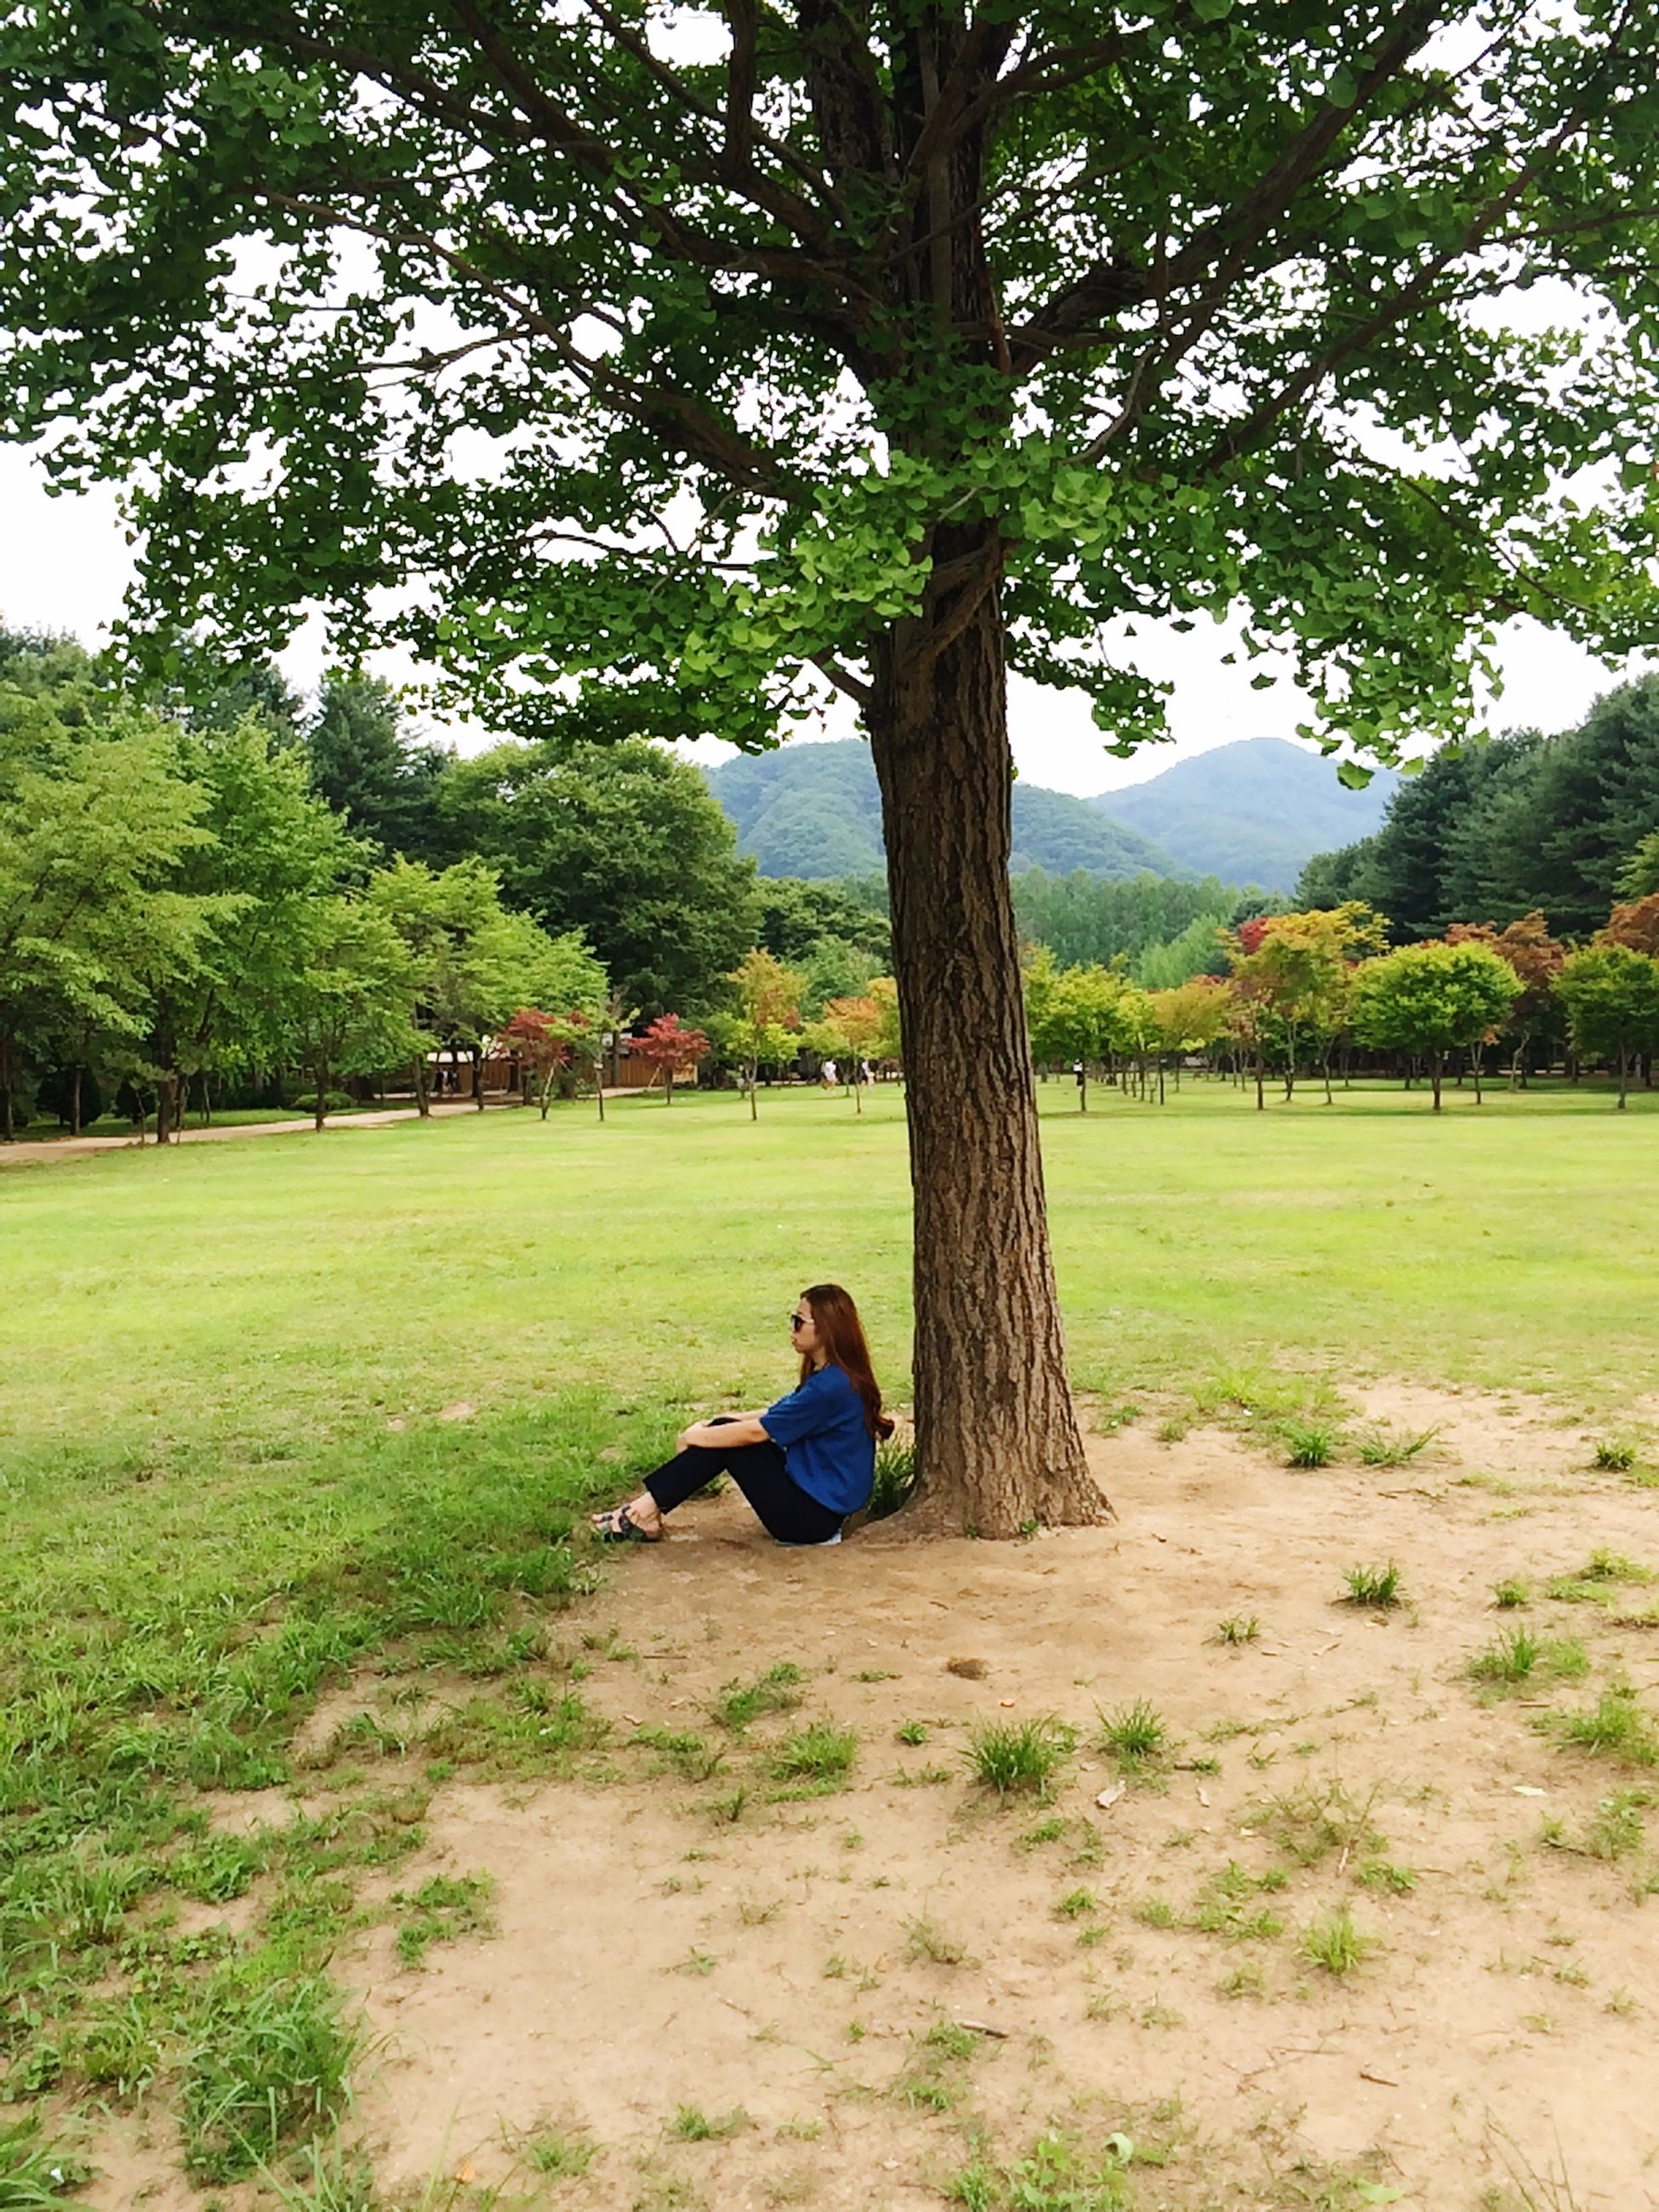 tree, leisure activity, lifestyles, grass, tranquility, rear view, full length, sitting, green color, relaxation, tranquil scene, nature, casual clothing, childhood, growth, landscape, men, person